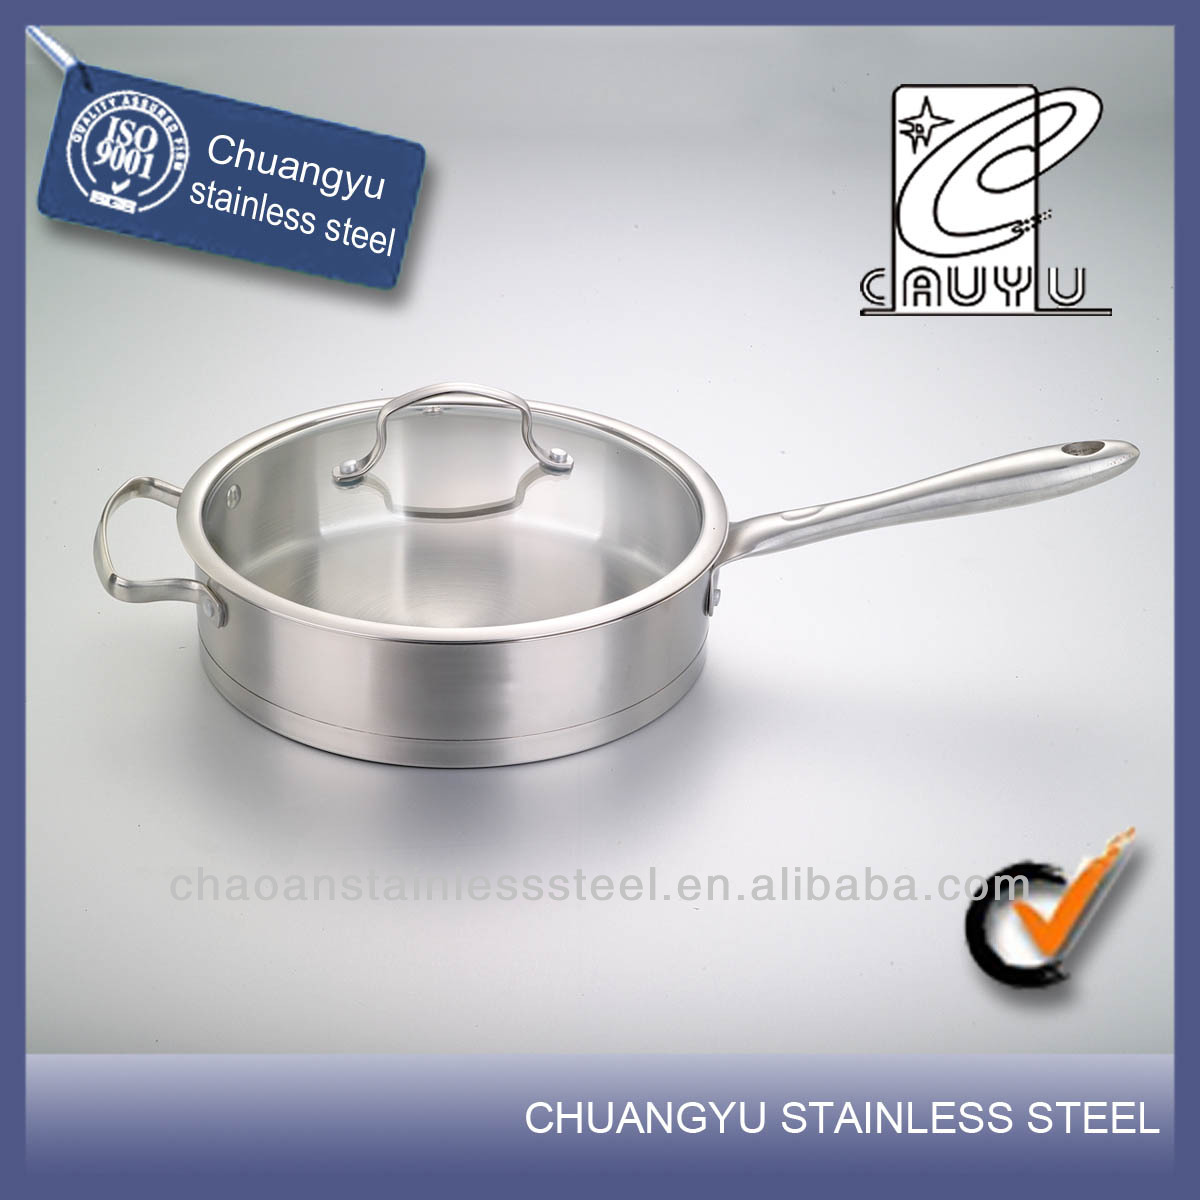 New product stainless steel large fry pan